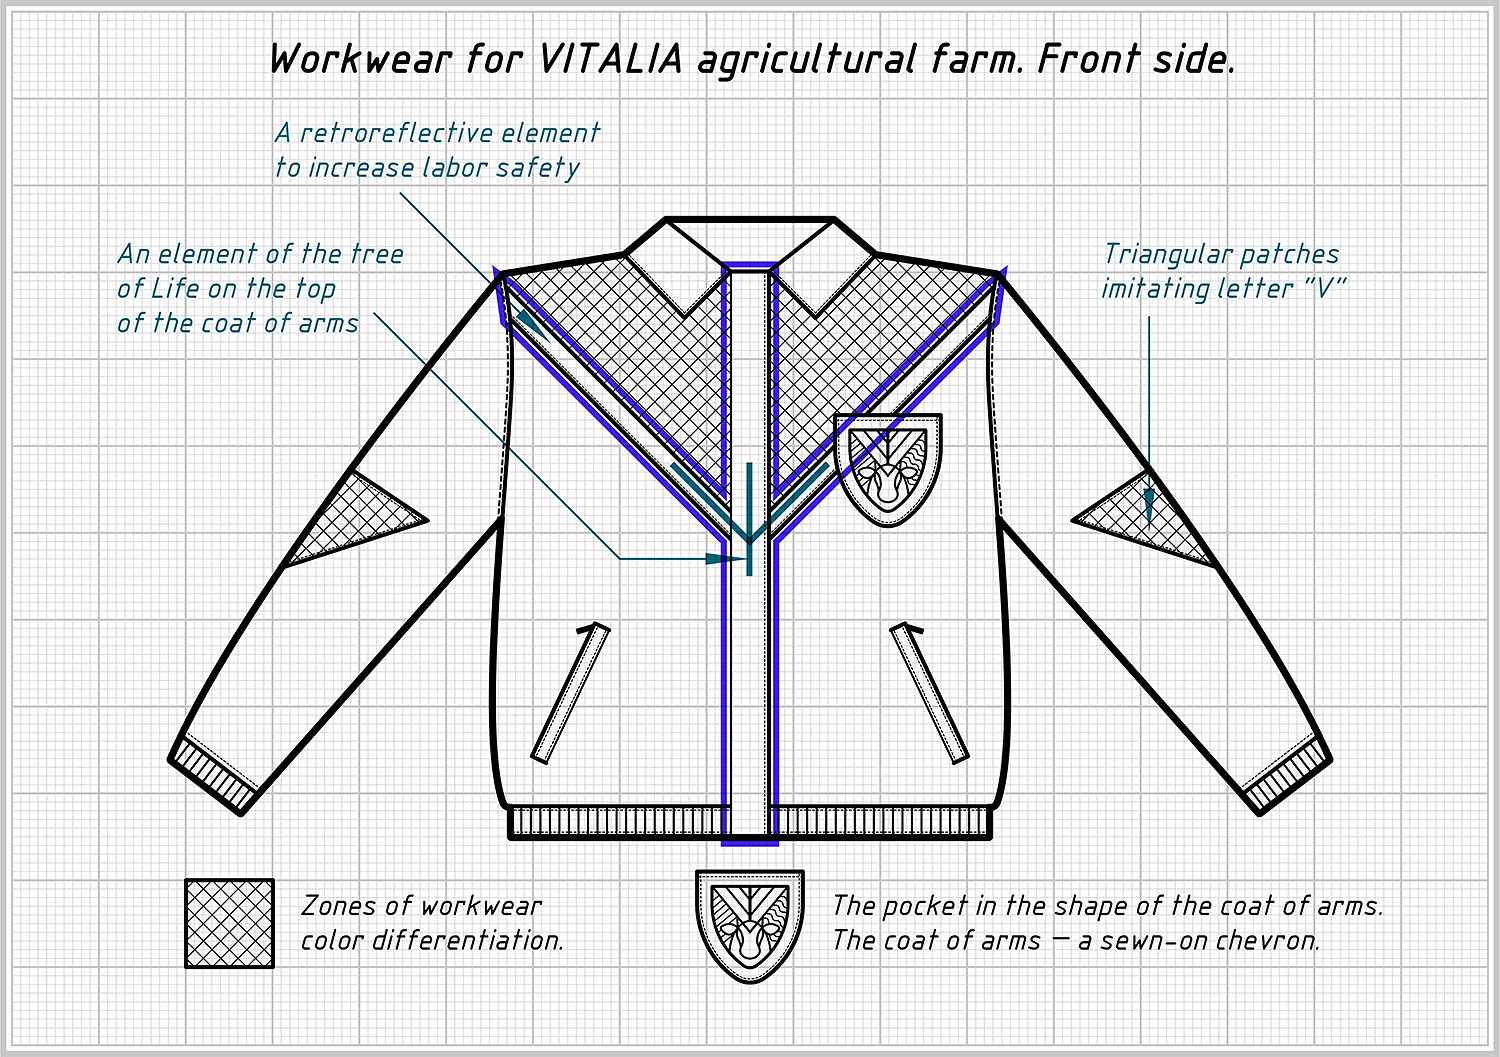 Workwear design for employees at the Vitalia farm. Branded work jacket for the farm, front side.